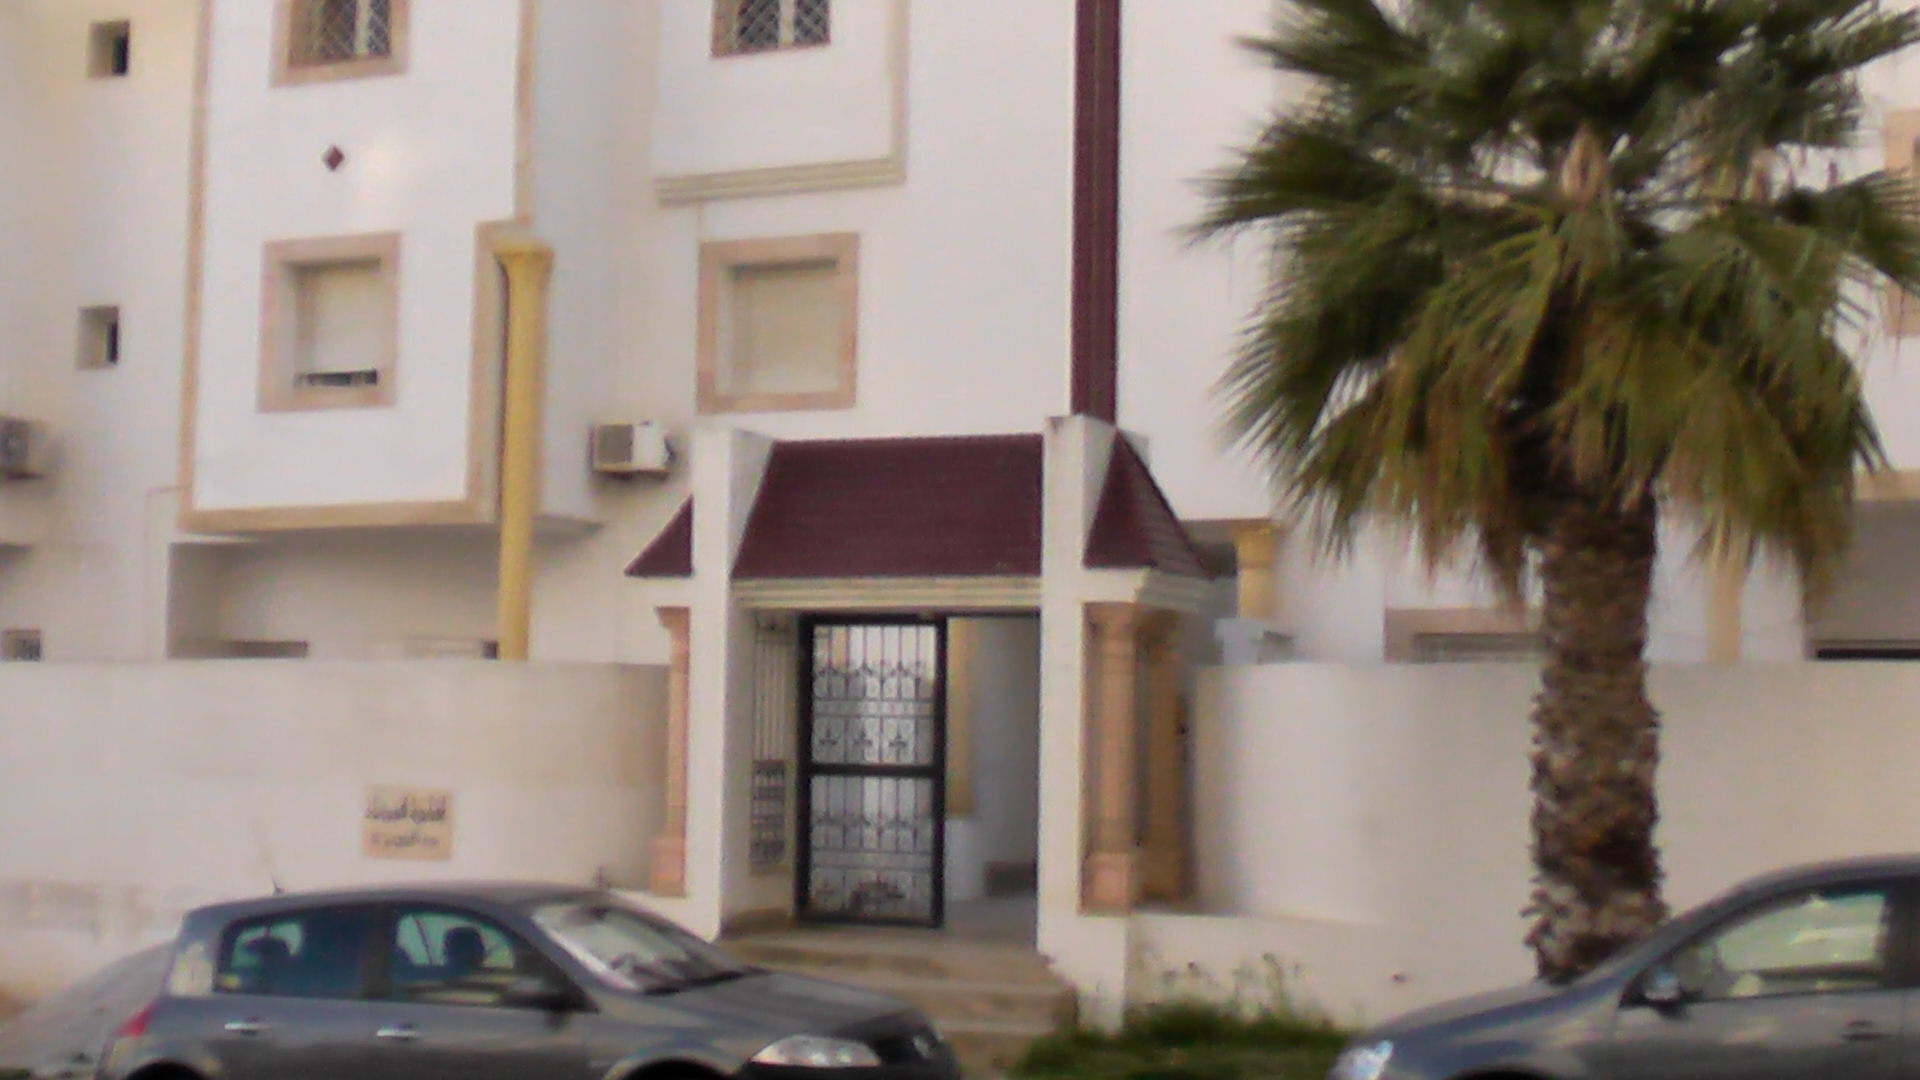 Ariana tunisie vente achat location appartement terrain for Achat maison en tunisie